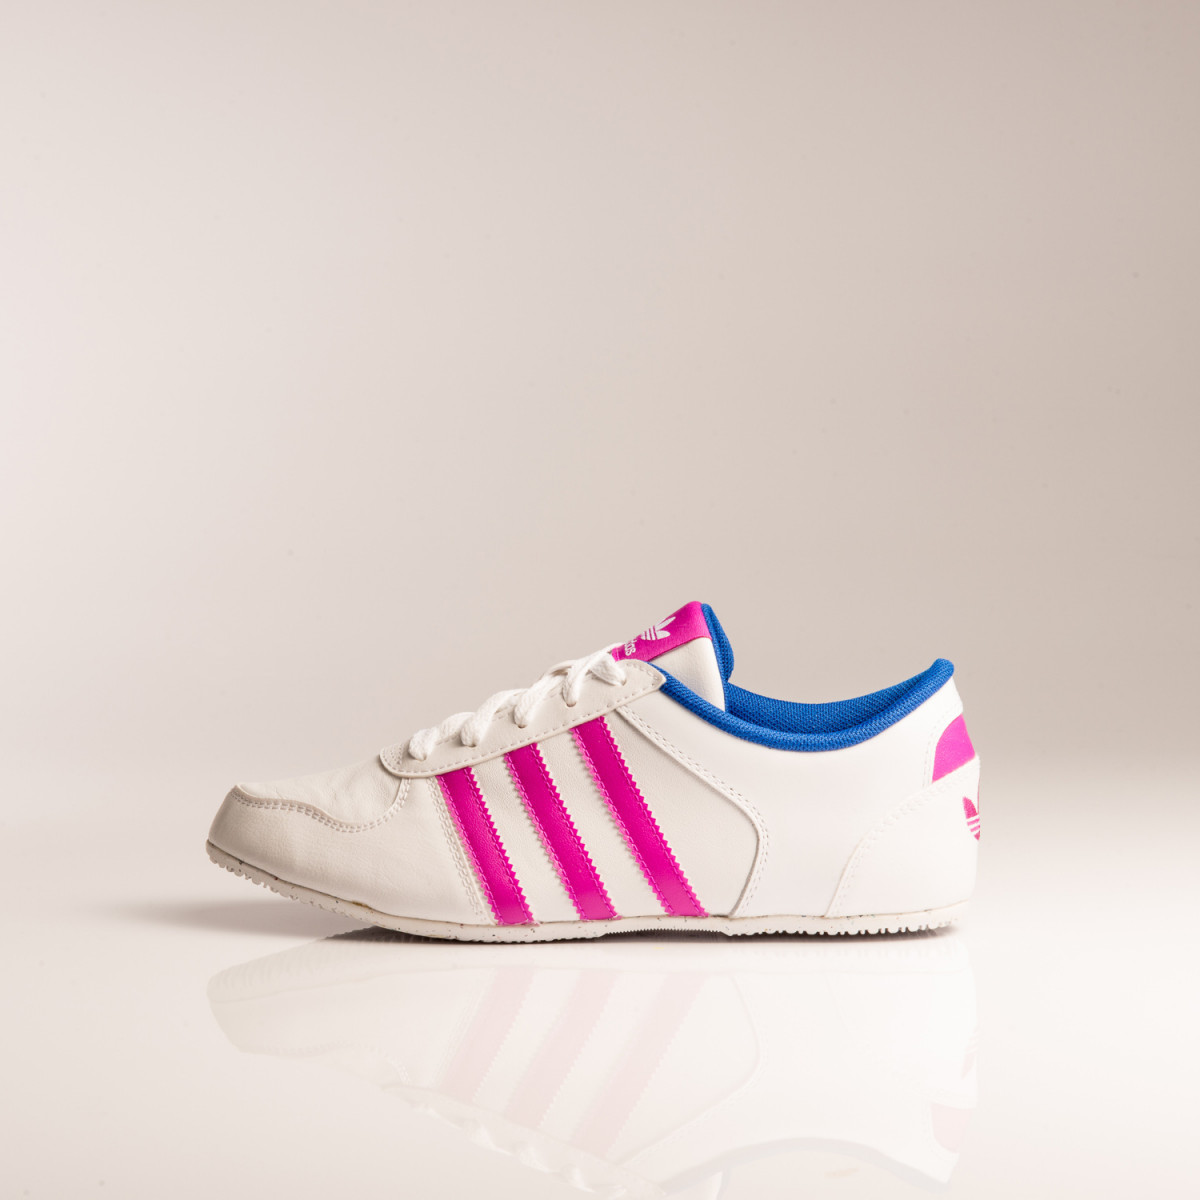 ZAPATILLAS ADIDAS ORIGINALS ADILINE W RUN